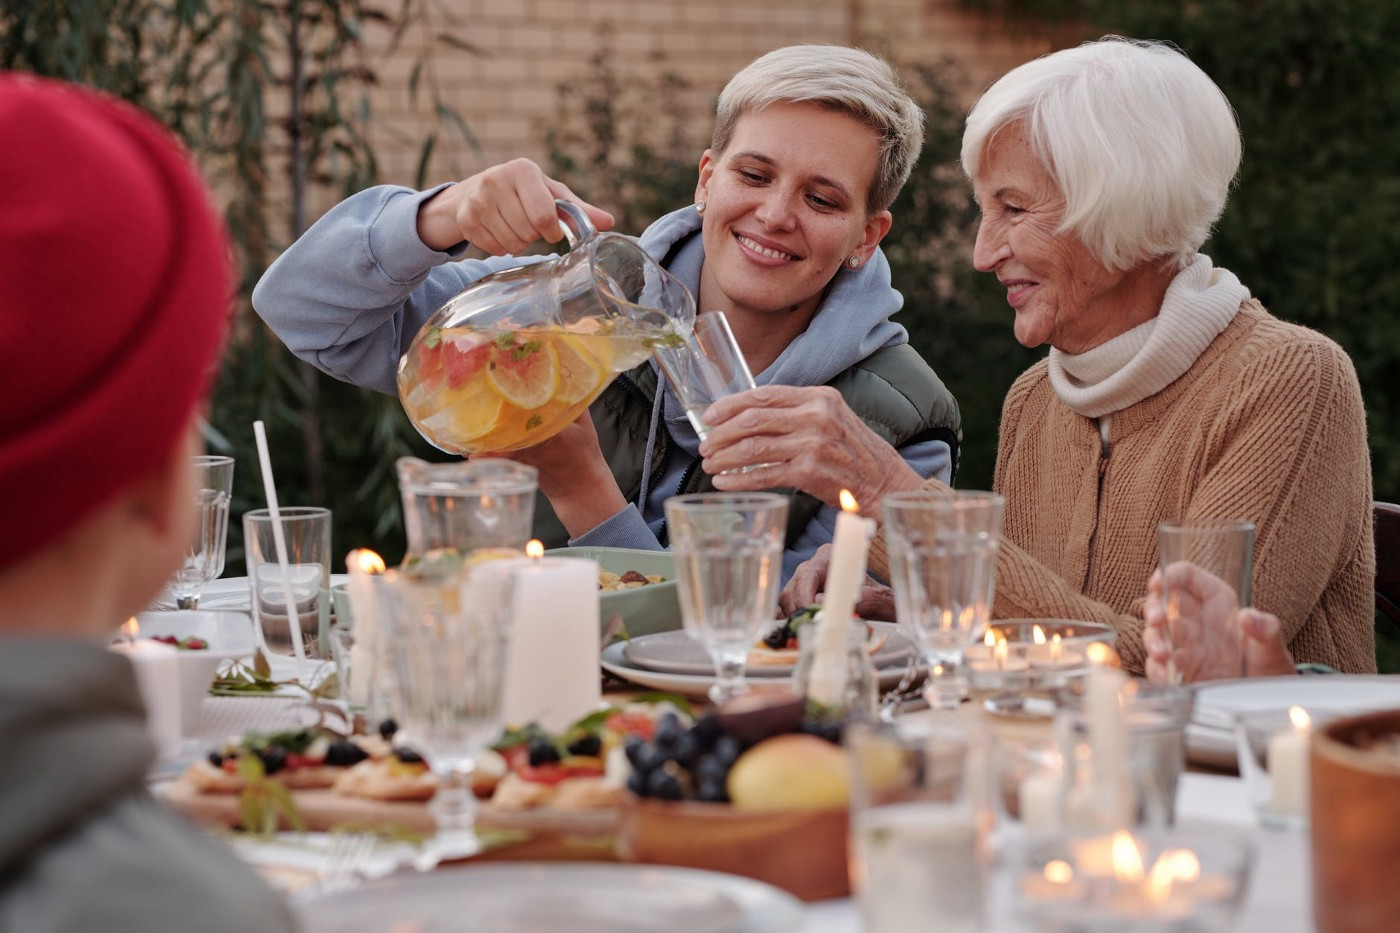 A younger woman is pouring lemonade to the older one — To Live the Hygge Lifestyle, Give Up on Toxic Individualism